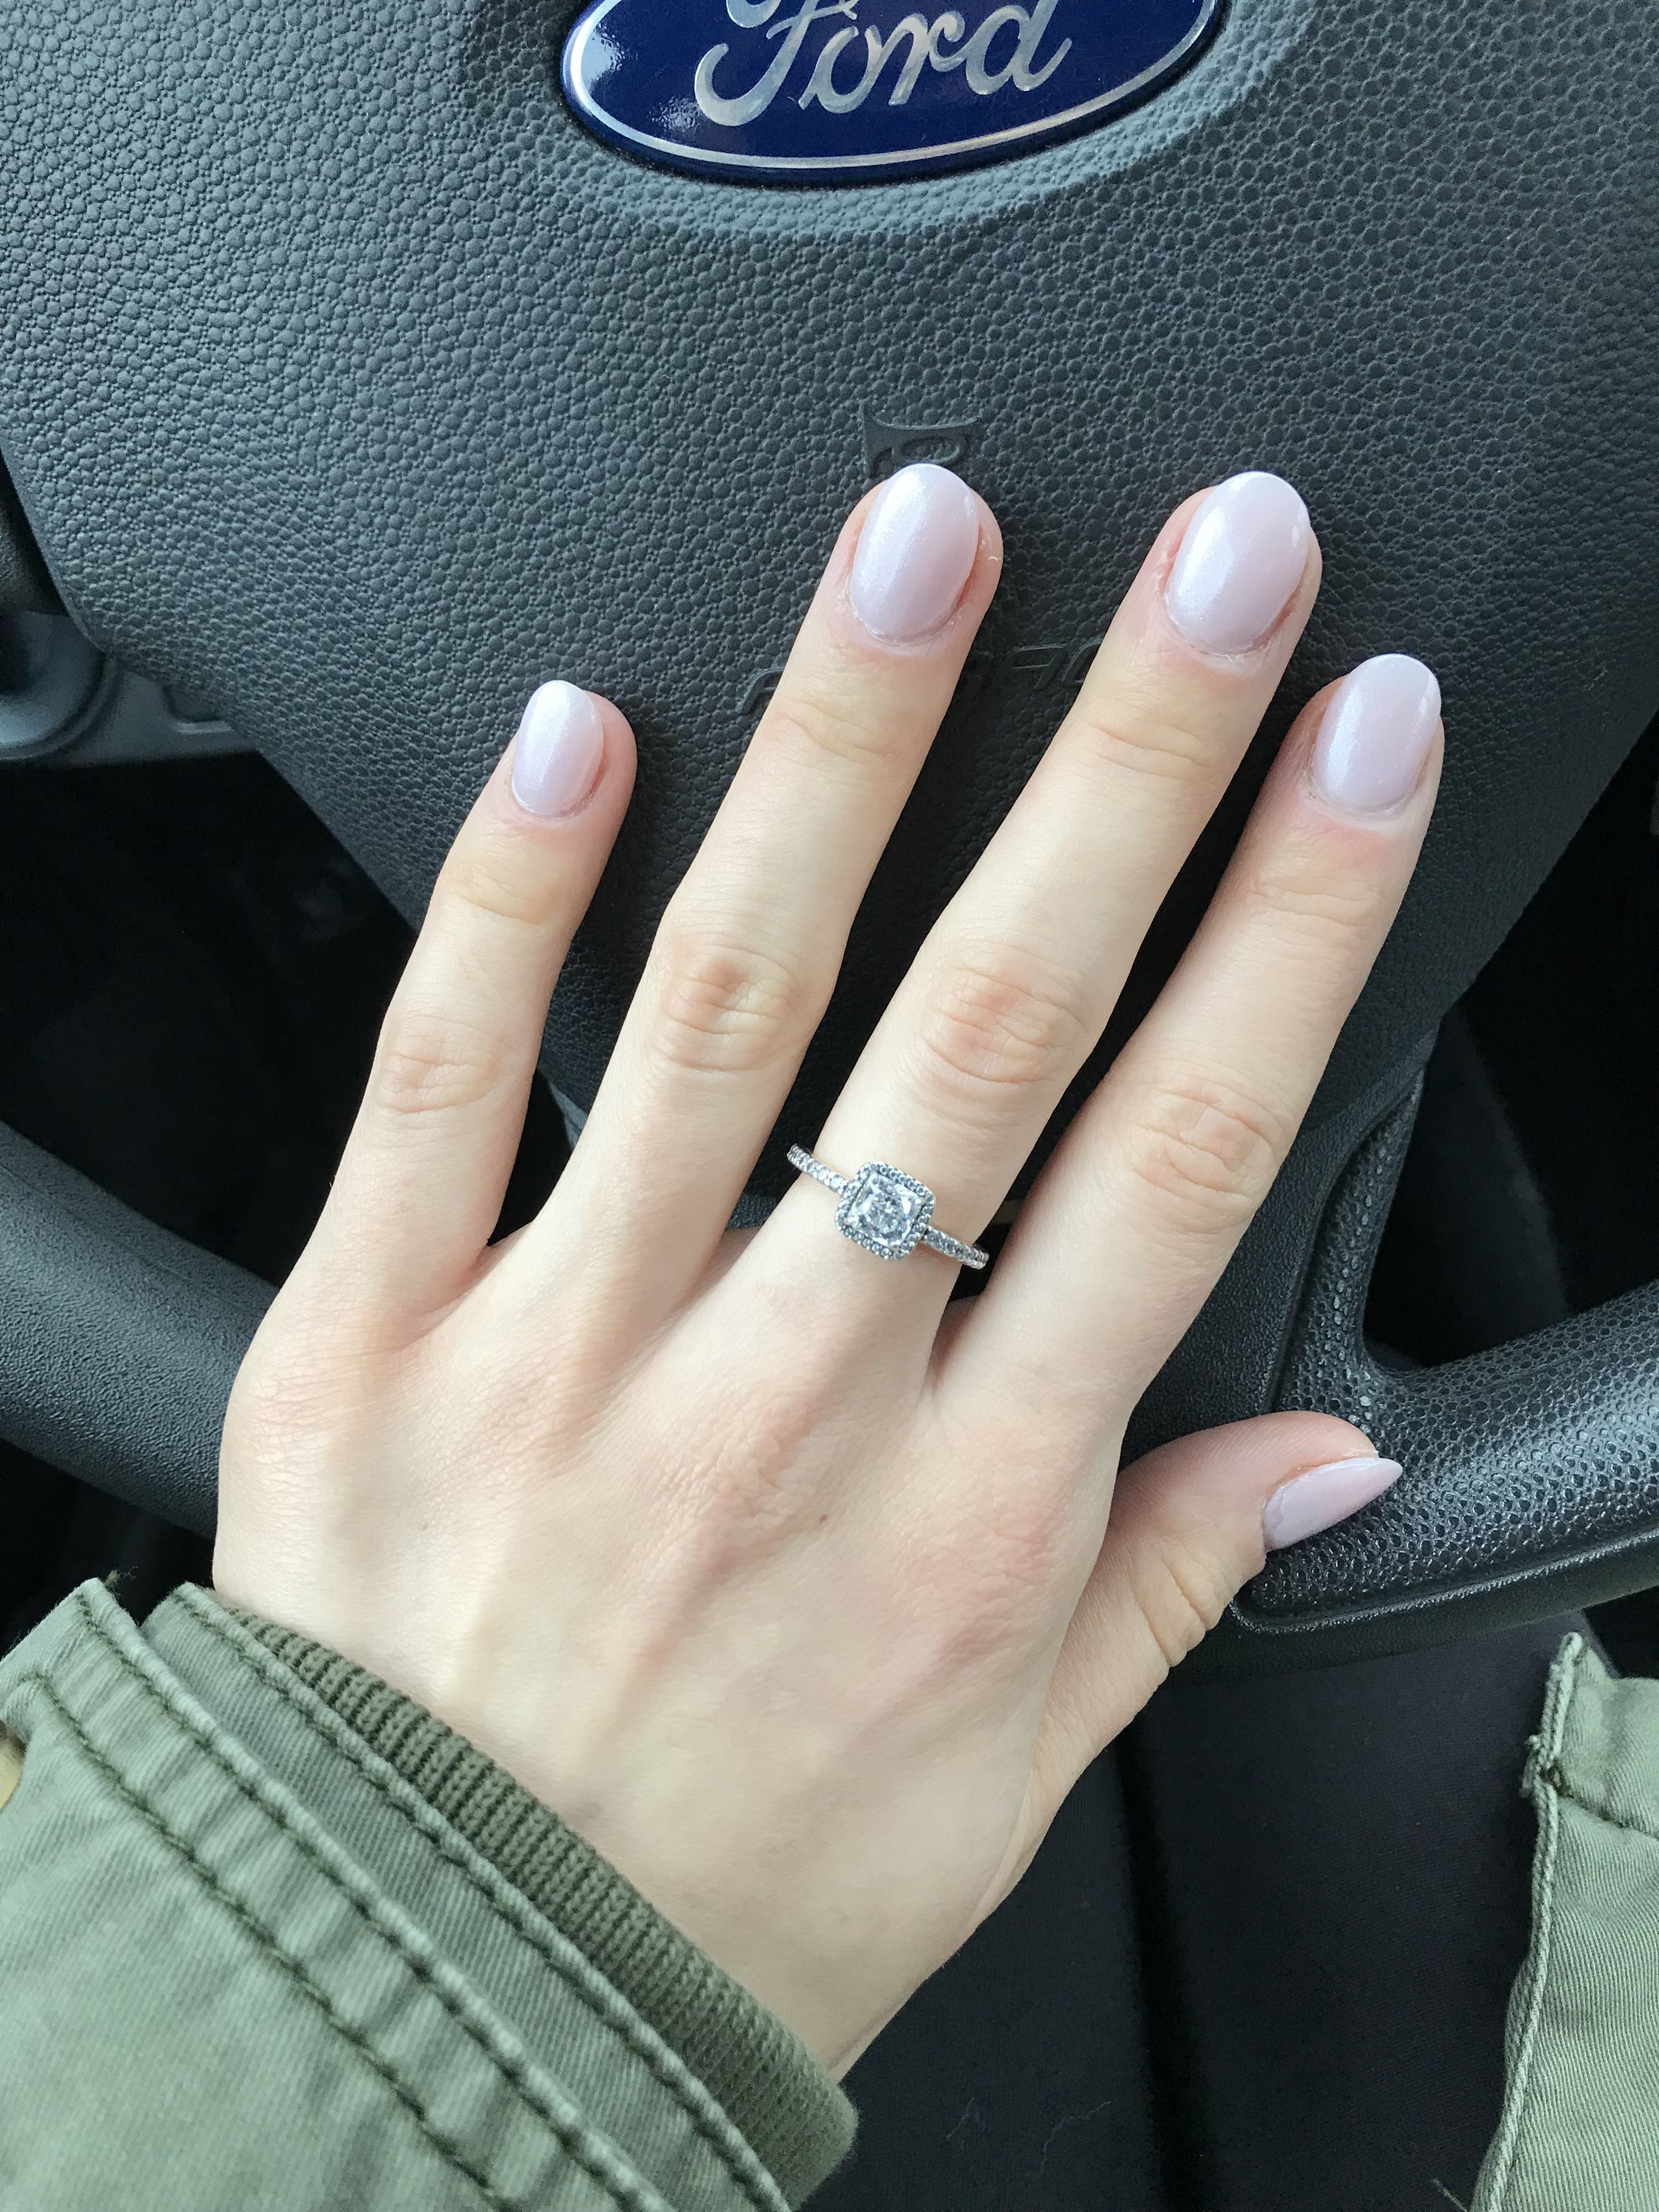 Short Oval Sns Nails Sns Nails Short Rounded Acrylic Nails Short Oval Nails